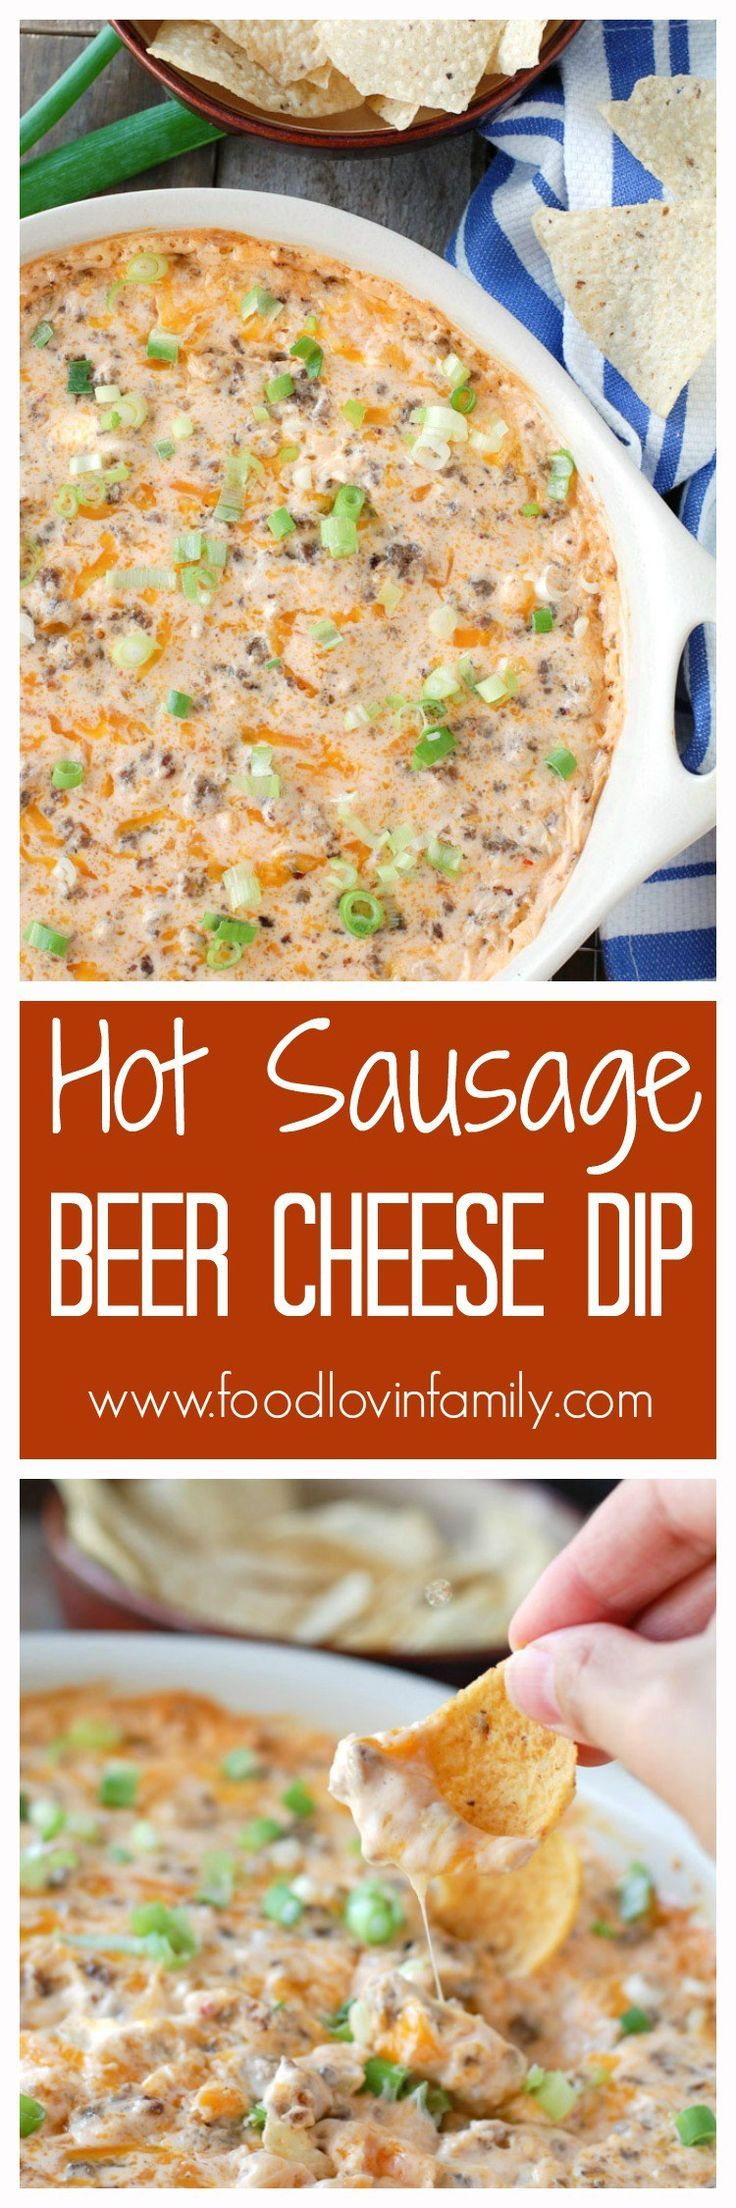 Hot Sausage Beer Cheese Dip makes a great appetizer! The perfect dip for race day or any party. (Cheese Appetizers Dip)